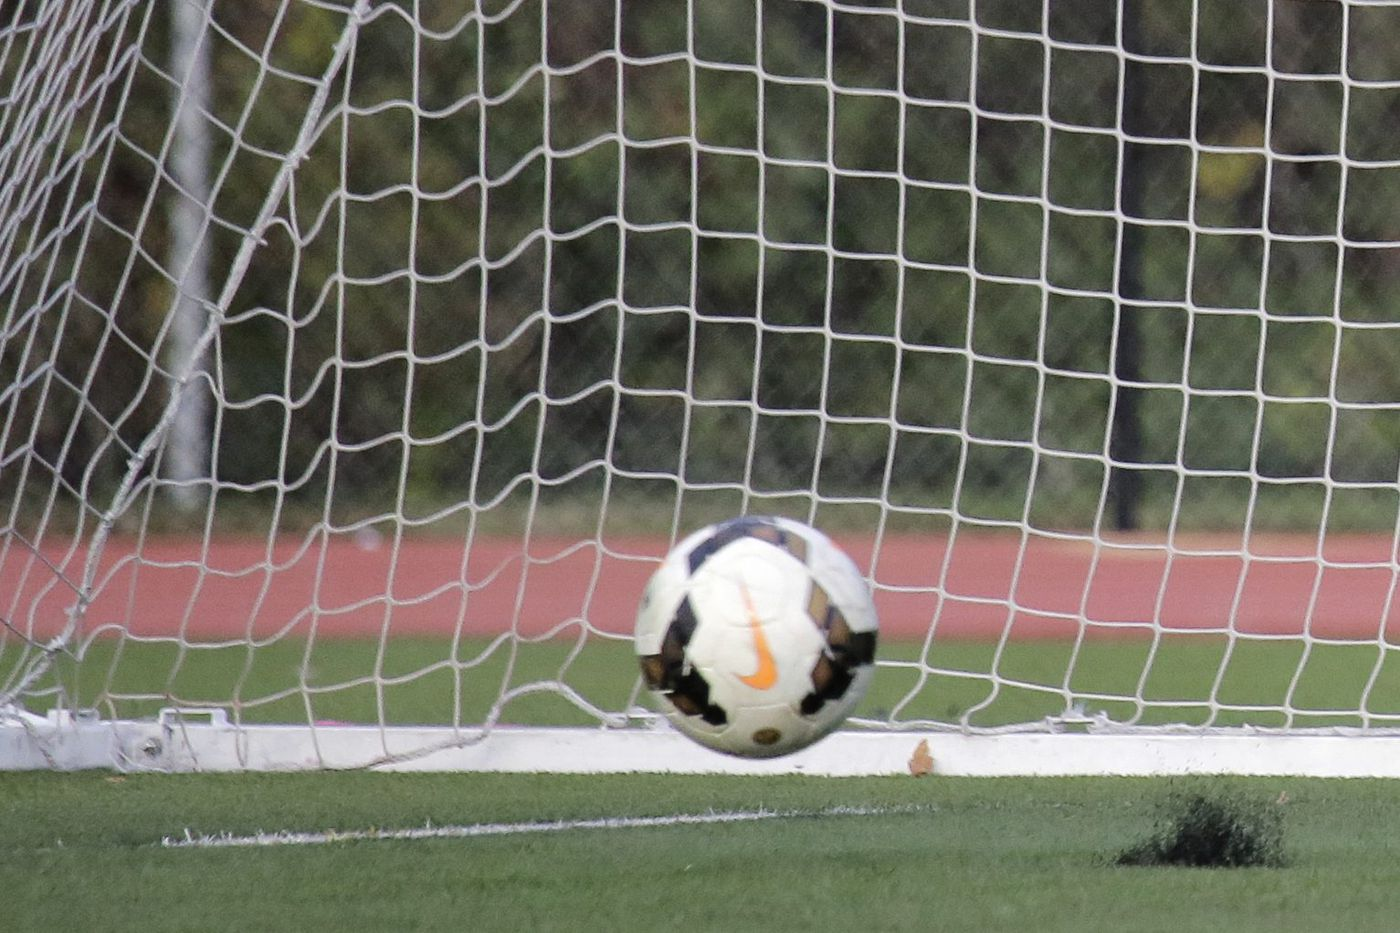 Monday's South Jersey roundup: Drew Gallagher header leads Seneca boys' soccer to double OT win